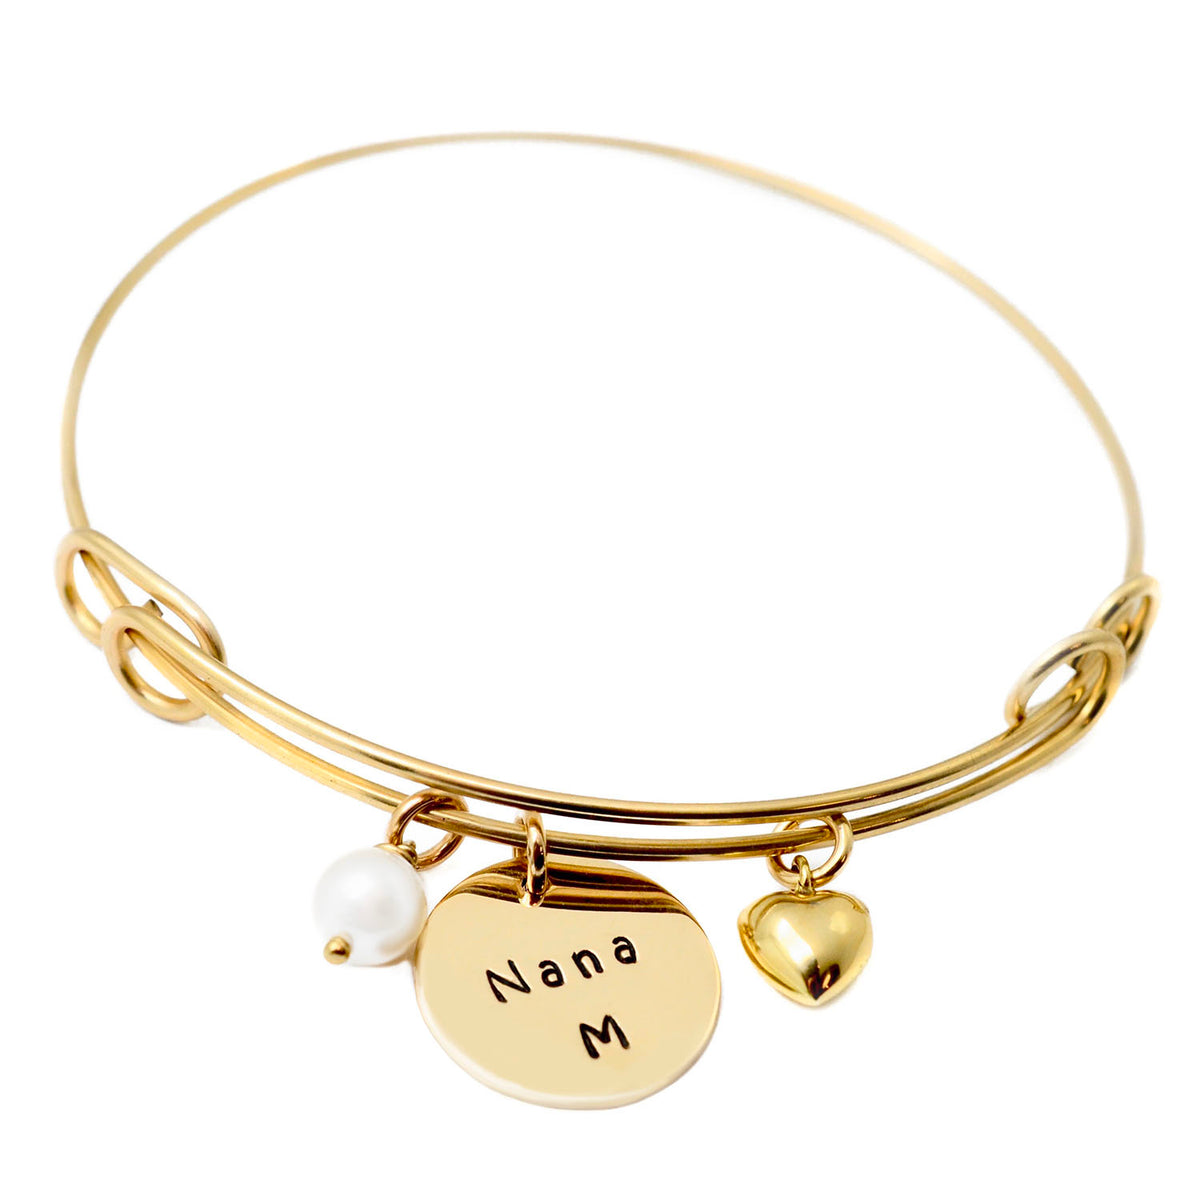 Expandable Bangle Bracelet - 14K Gold Filled - Love It Personalized